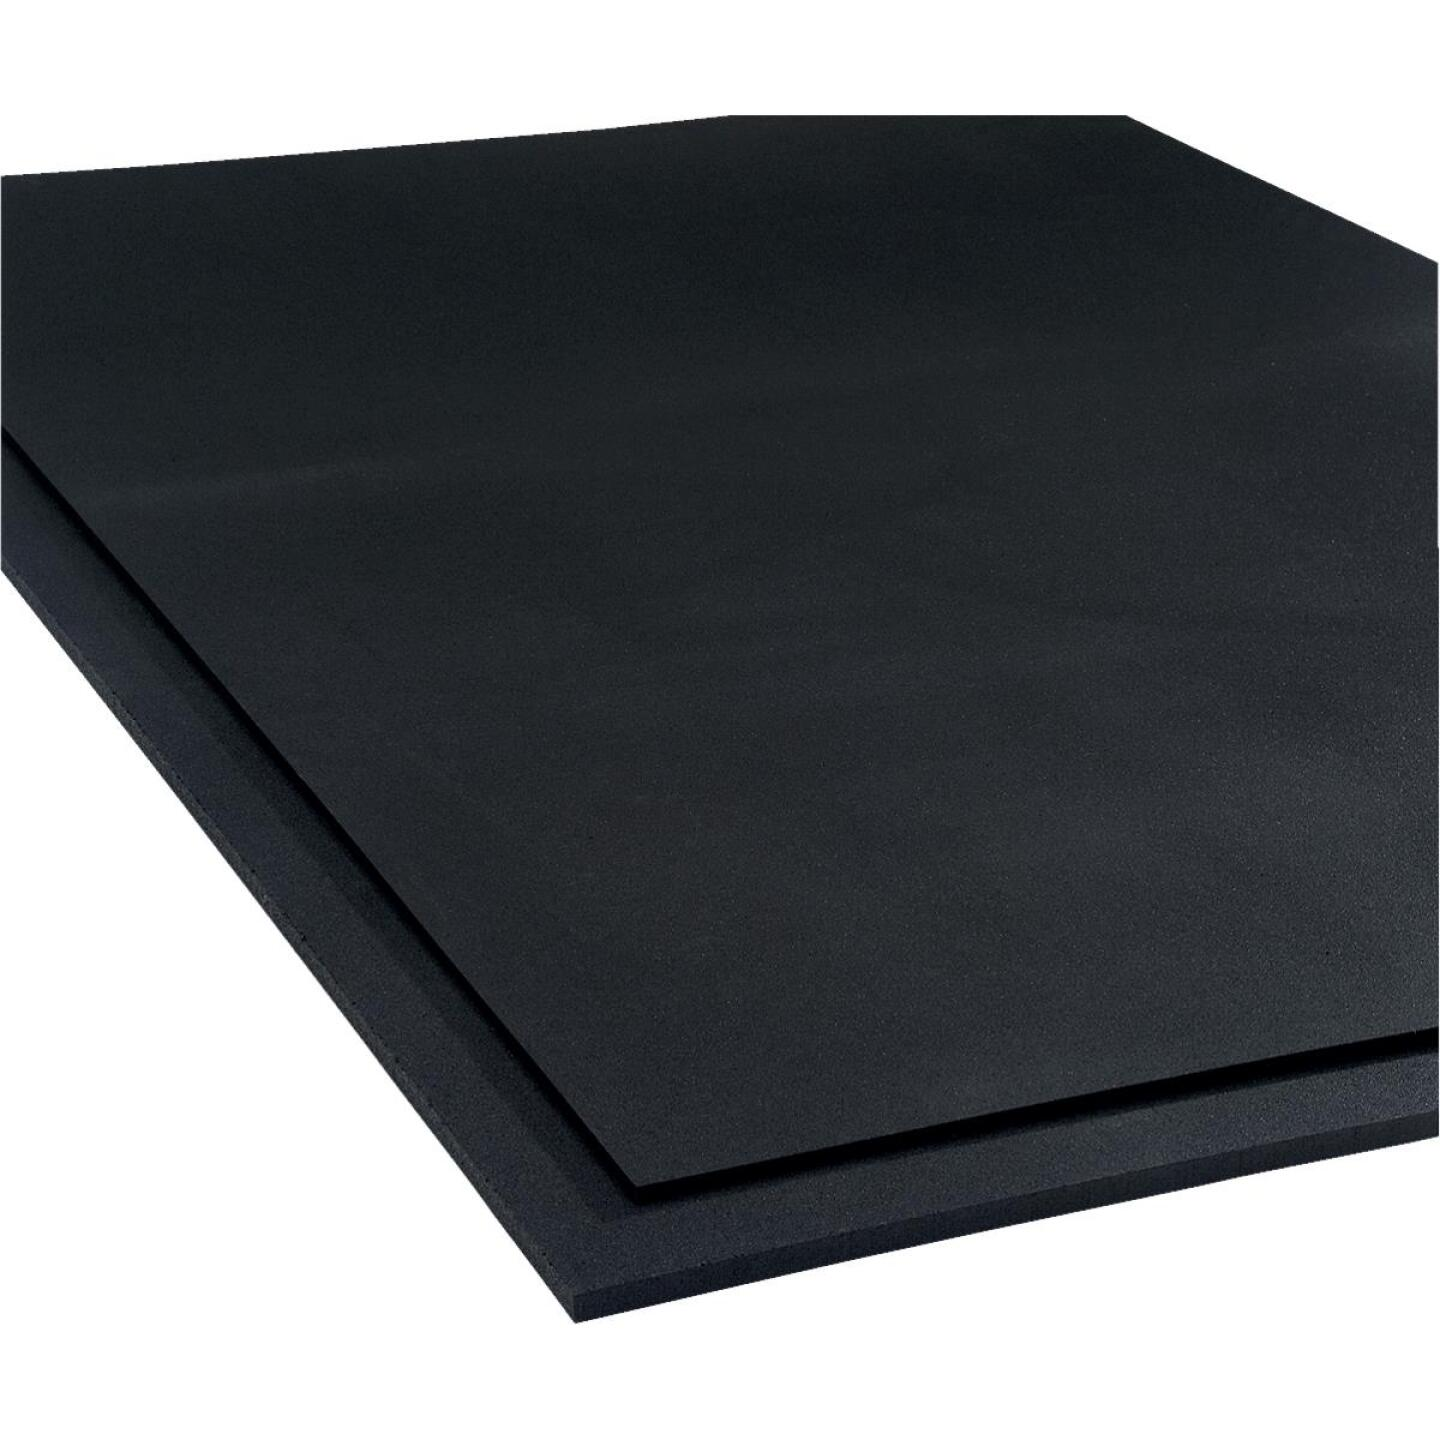 Flexgard 4 Ft. x 6 Ft. x 3/4 In. Rubber Stall Mat Image 1